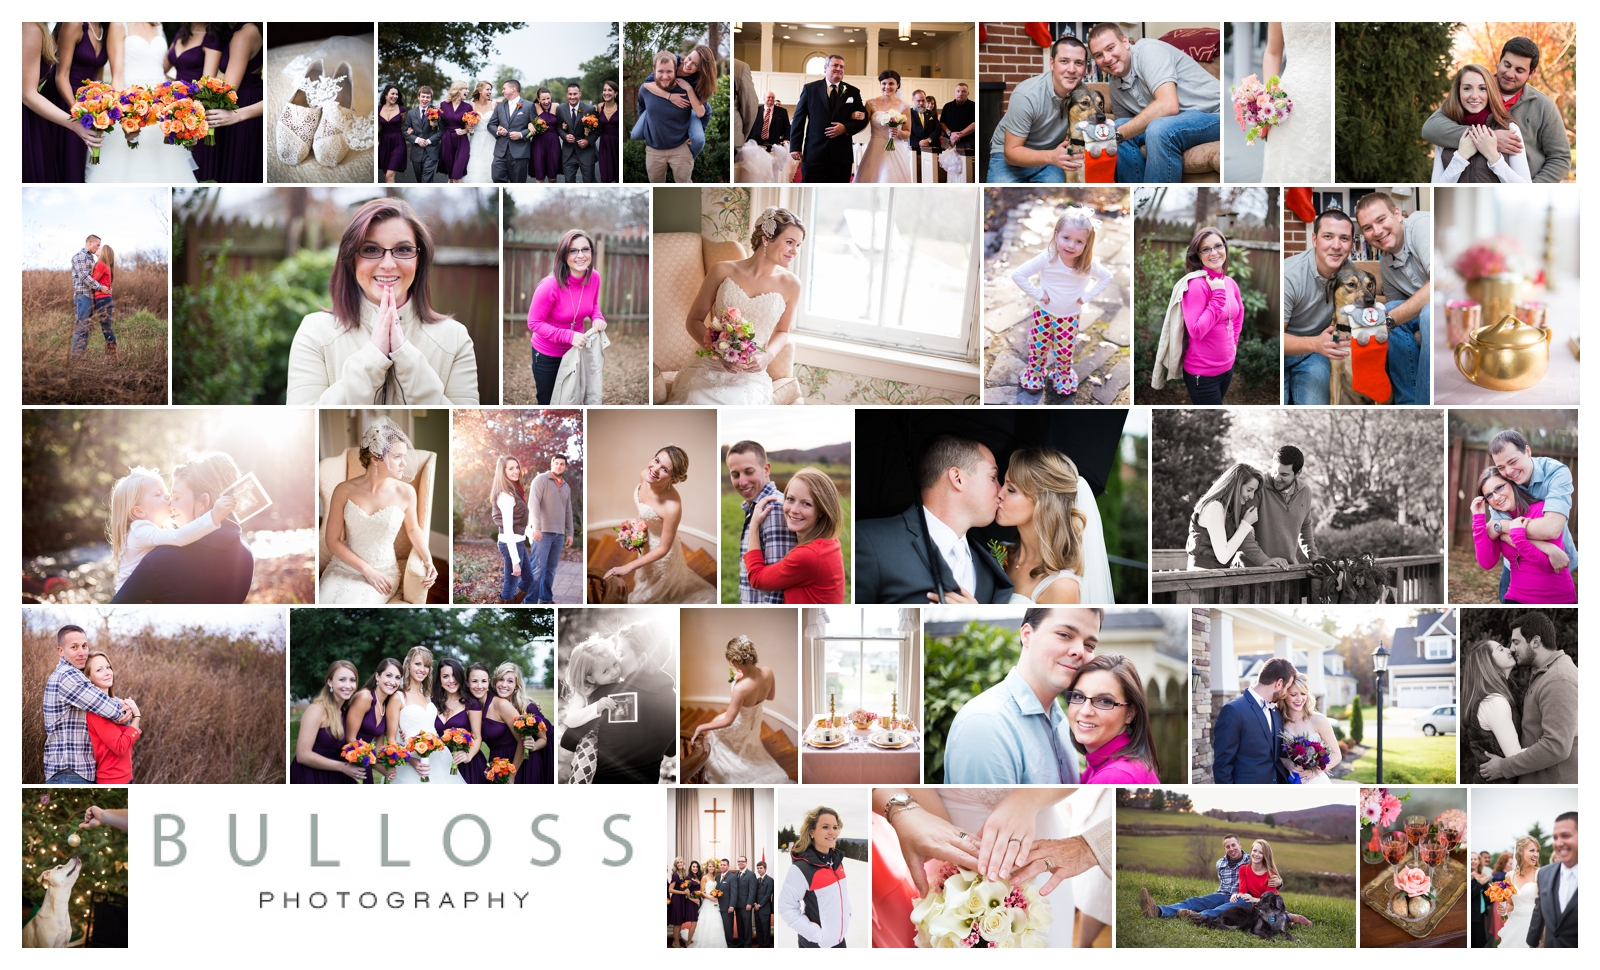 bulloss-va-wedding-photographers_0136